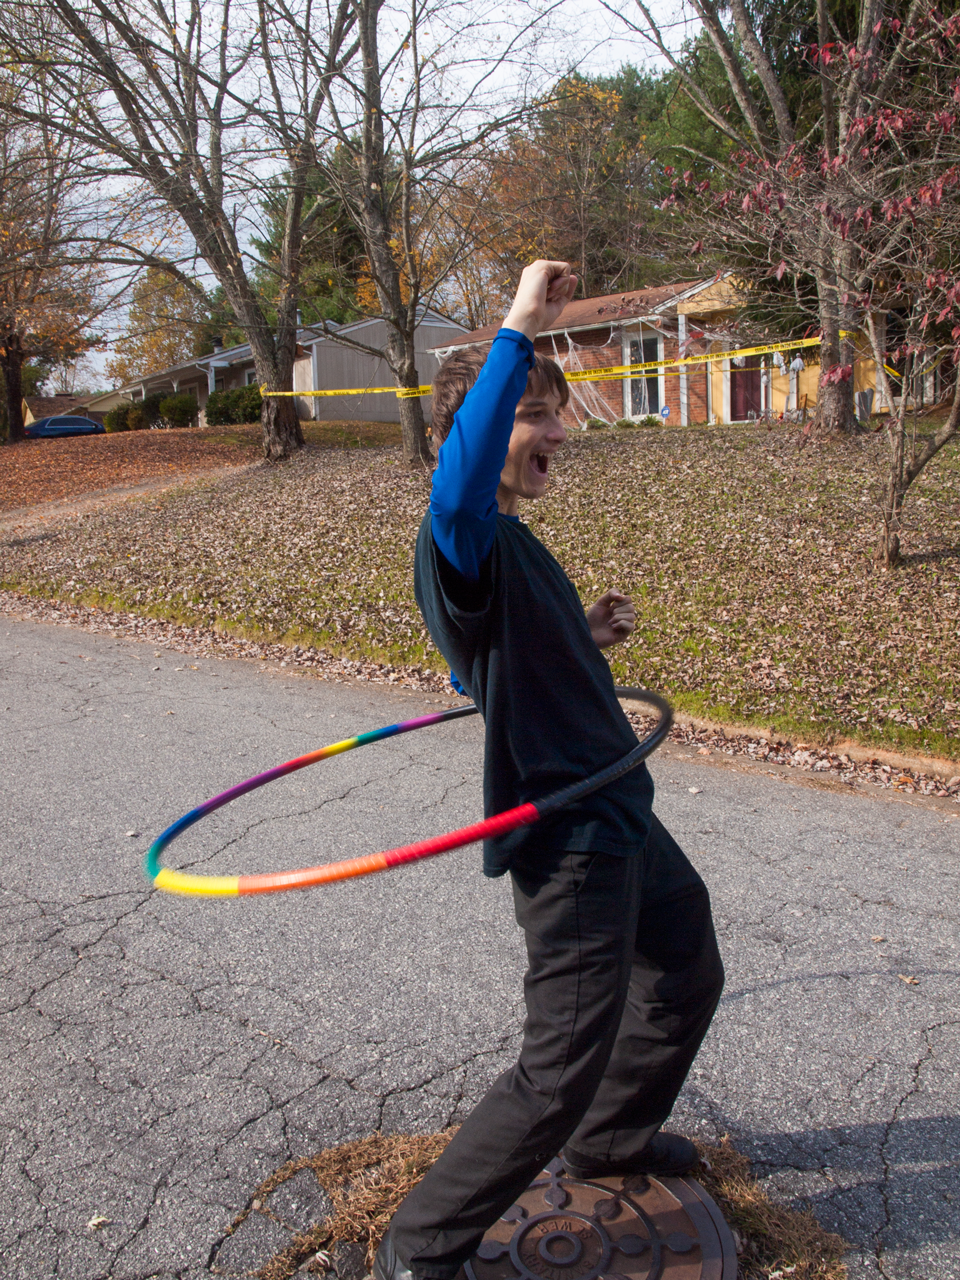 The power of the HOOP